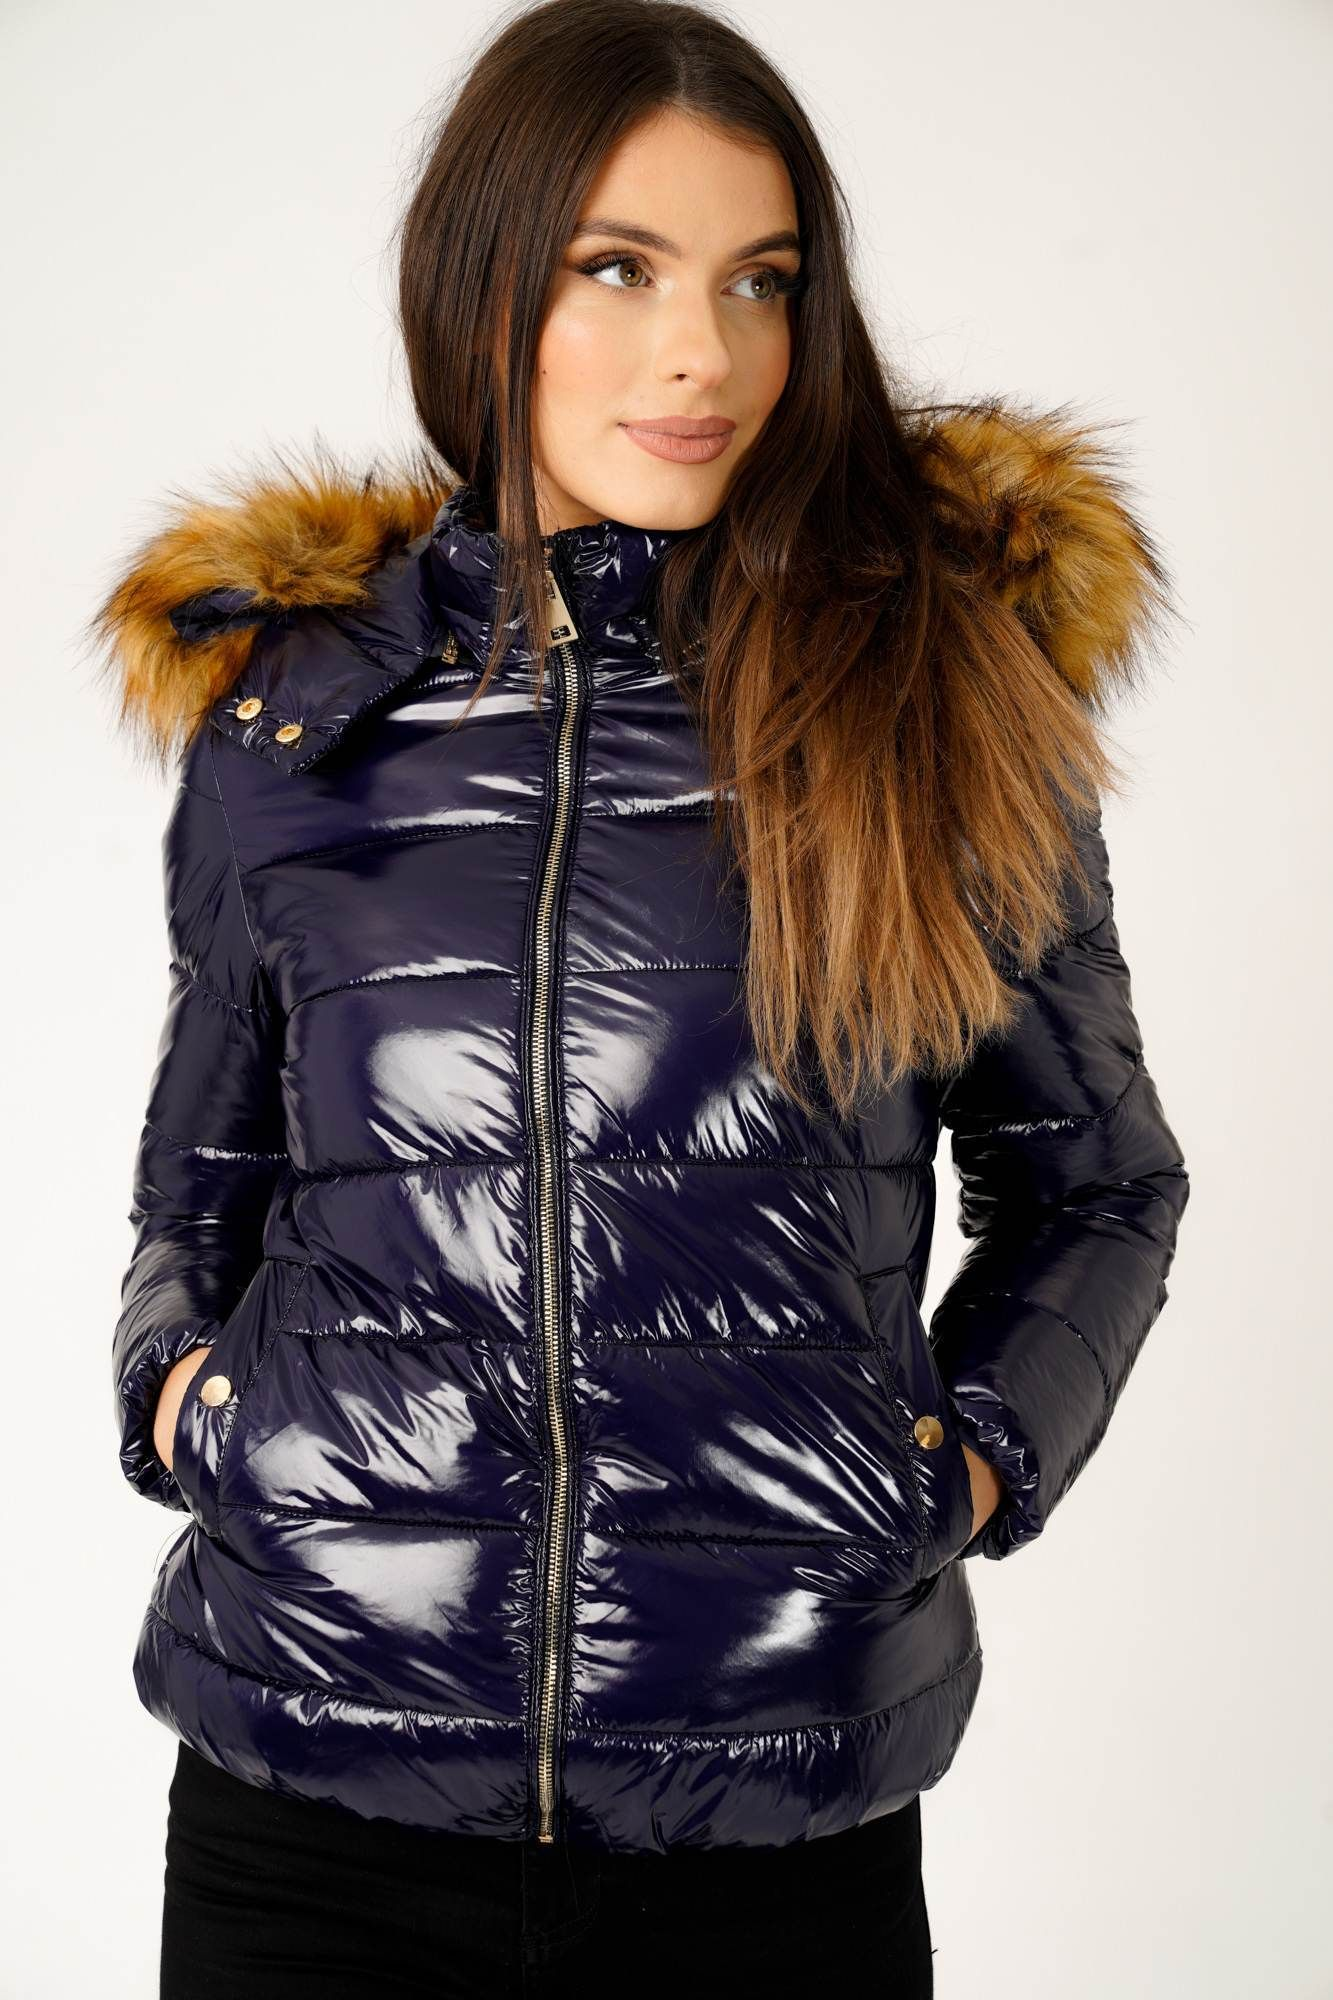 Wet Look Padded Jacket with Faux Fur Hood in Shiny Navy in